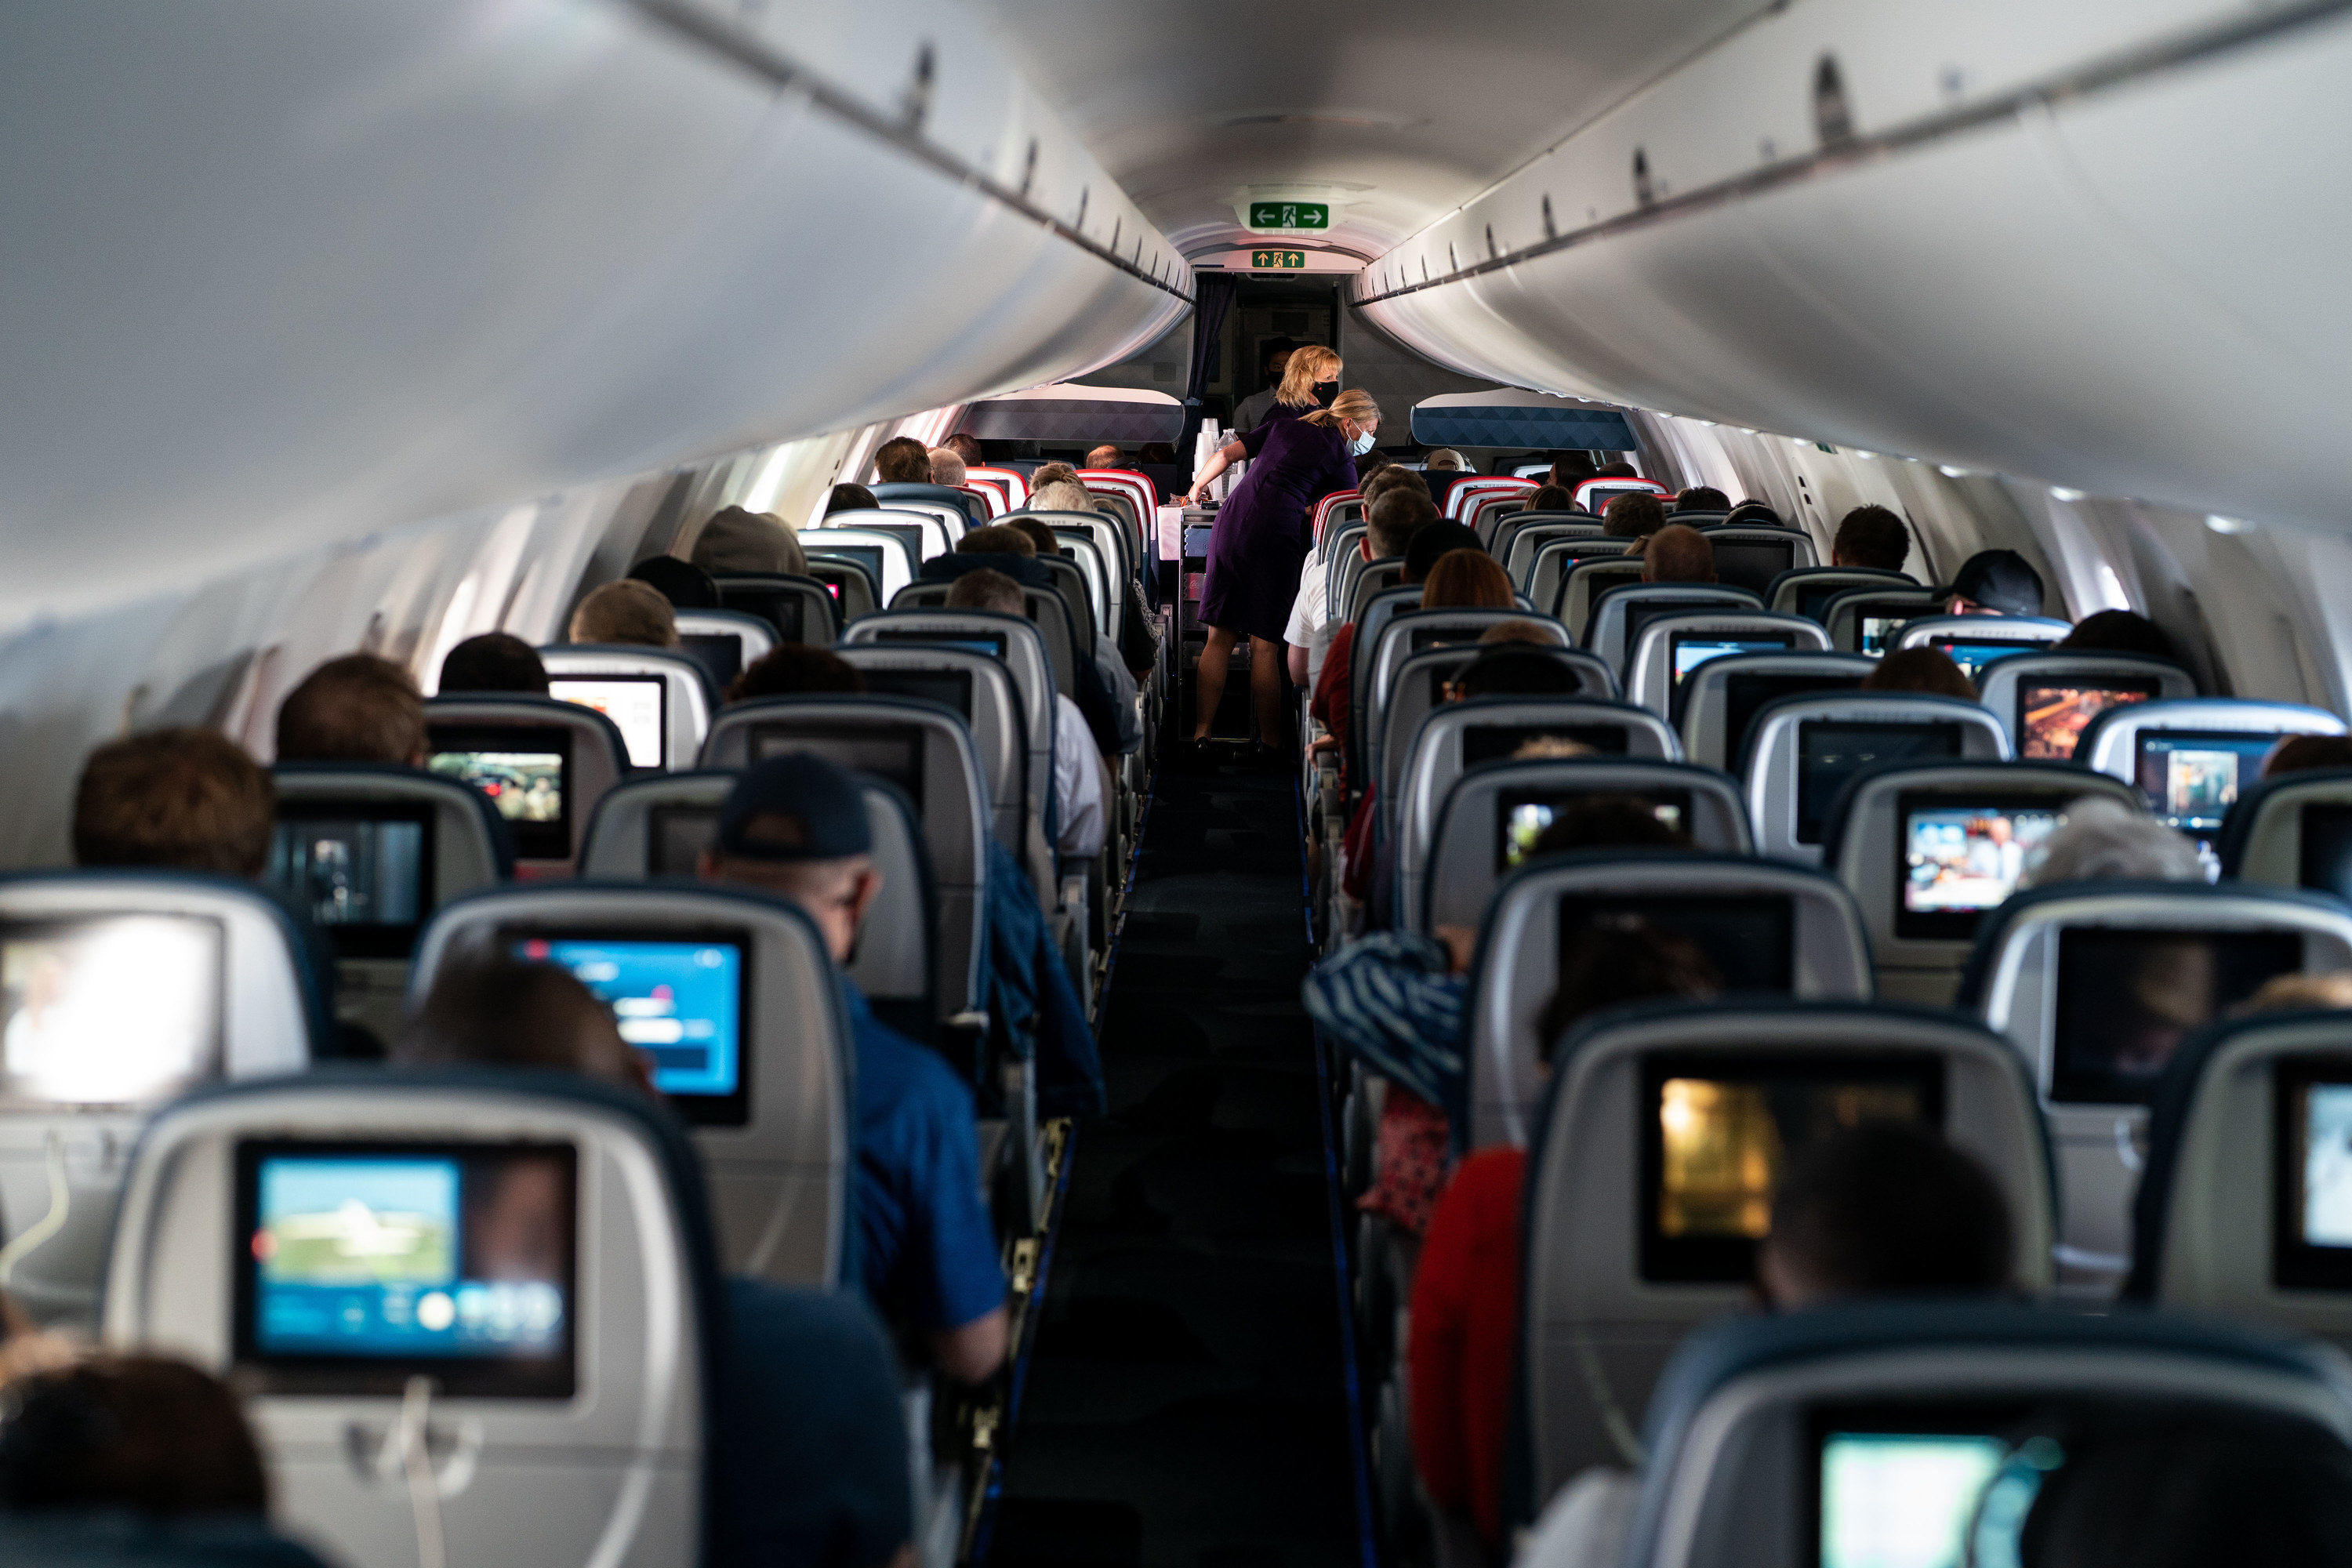 A plane with passengers and flight attendants